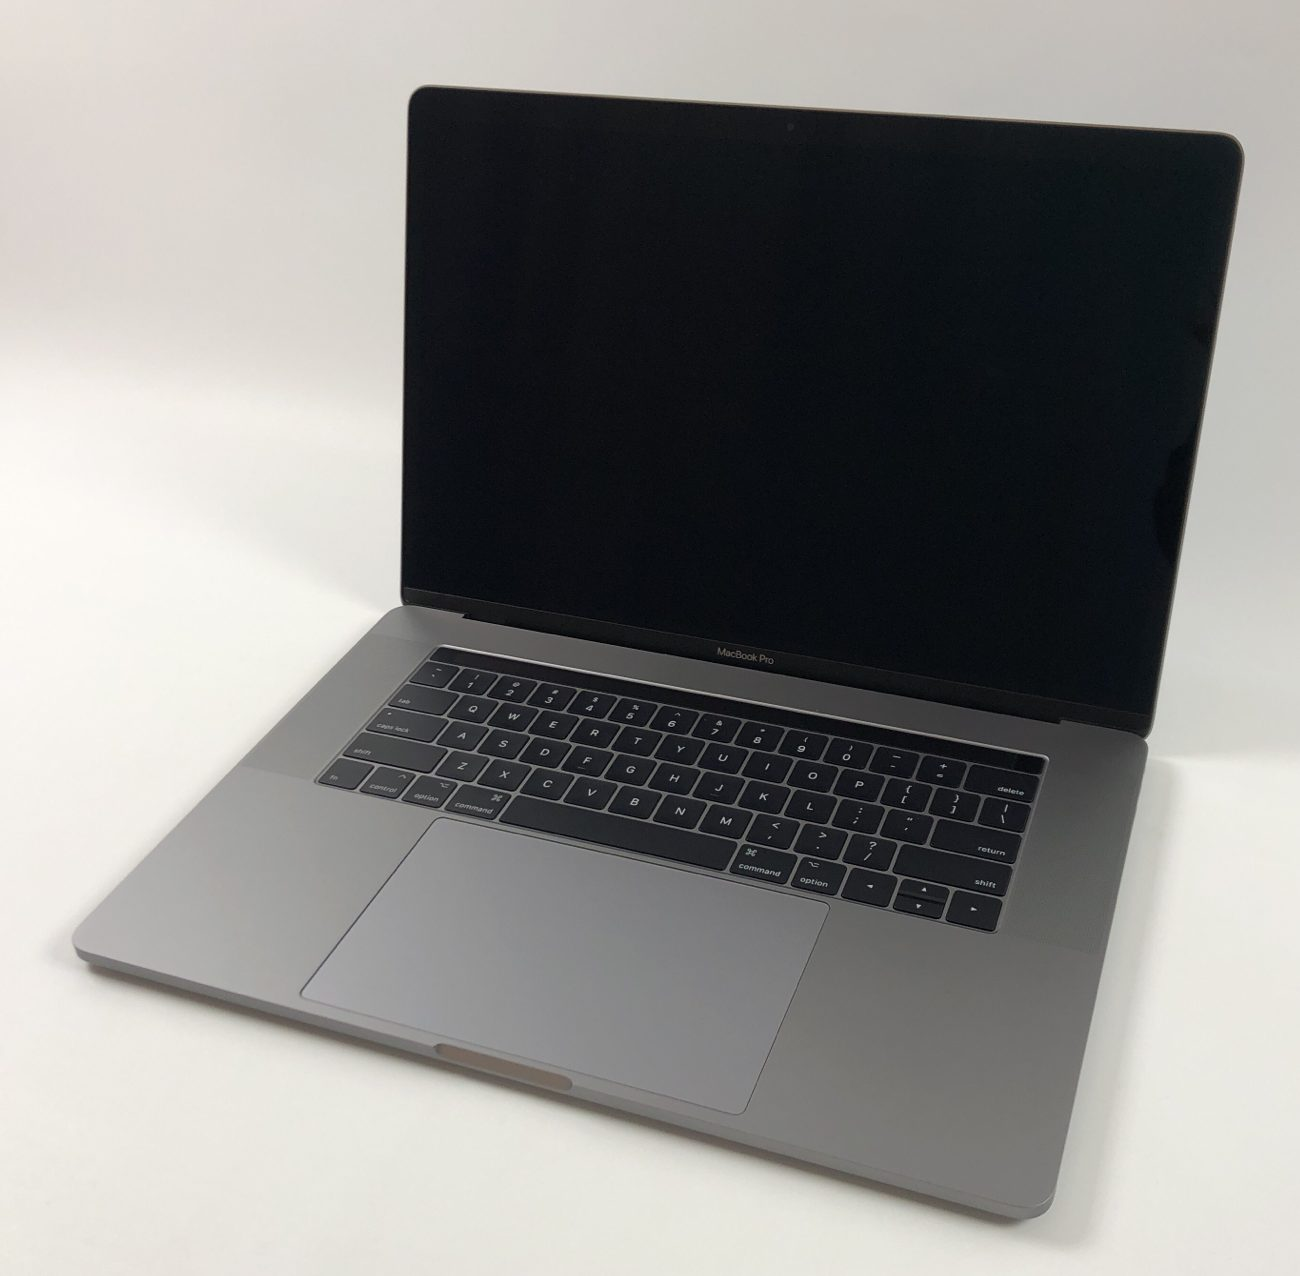 "MacBook Pro 15"" Touch Bar Mid 2017 (Intel Quad-Core i7 2.8 GHz 16 GB RAM 256 GB SSD), Space Gray, Intel Quad-Core i7 2.8 GHz, 16 GB RAM, 256 GB SSD, Kuva 1"